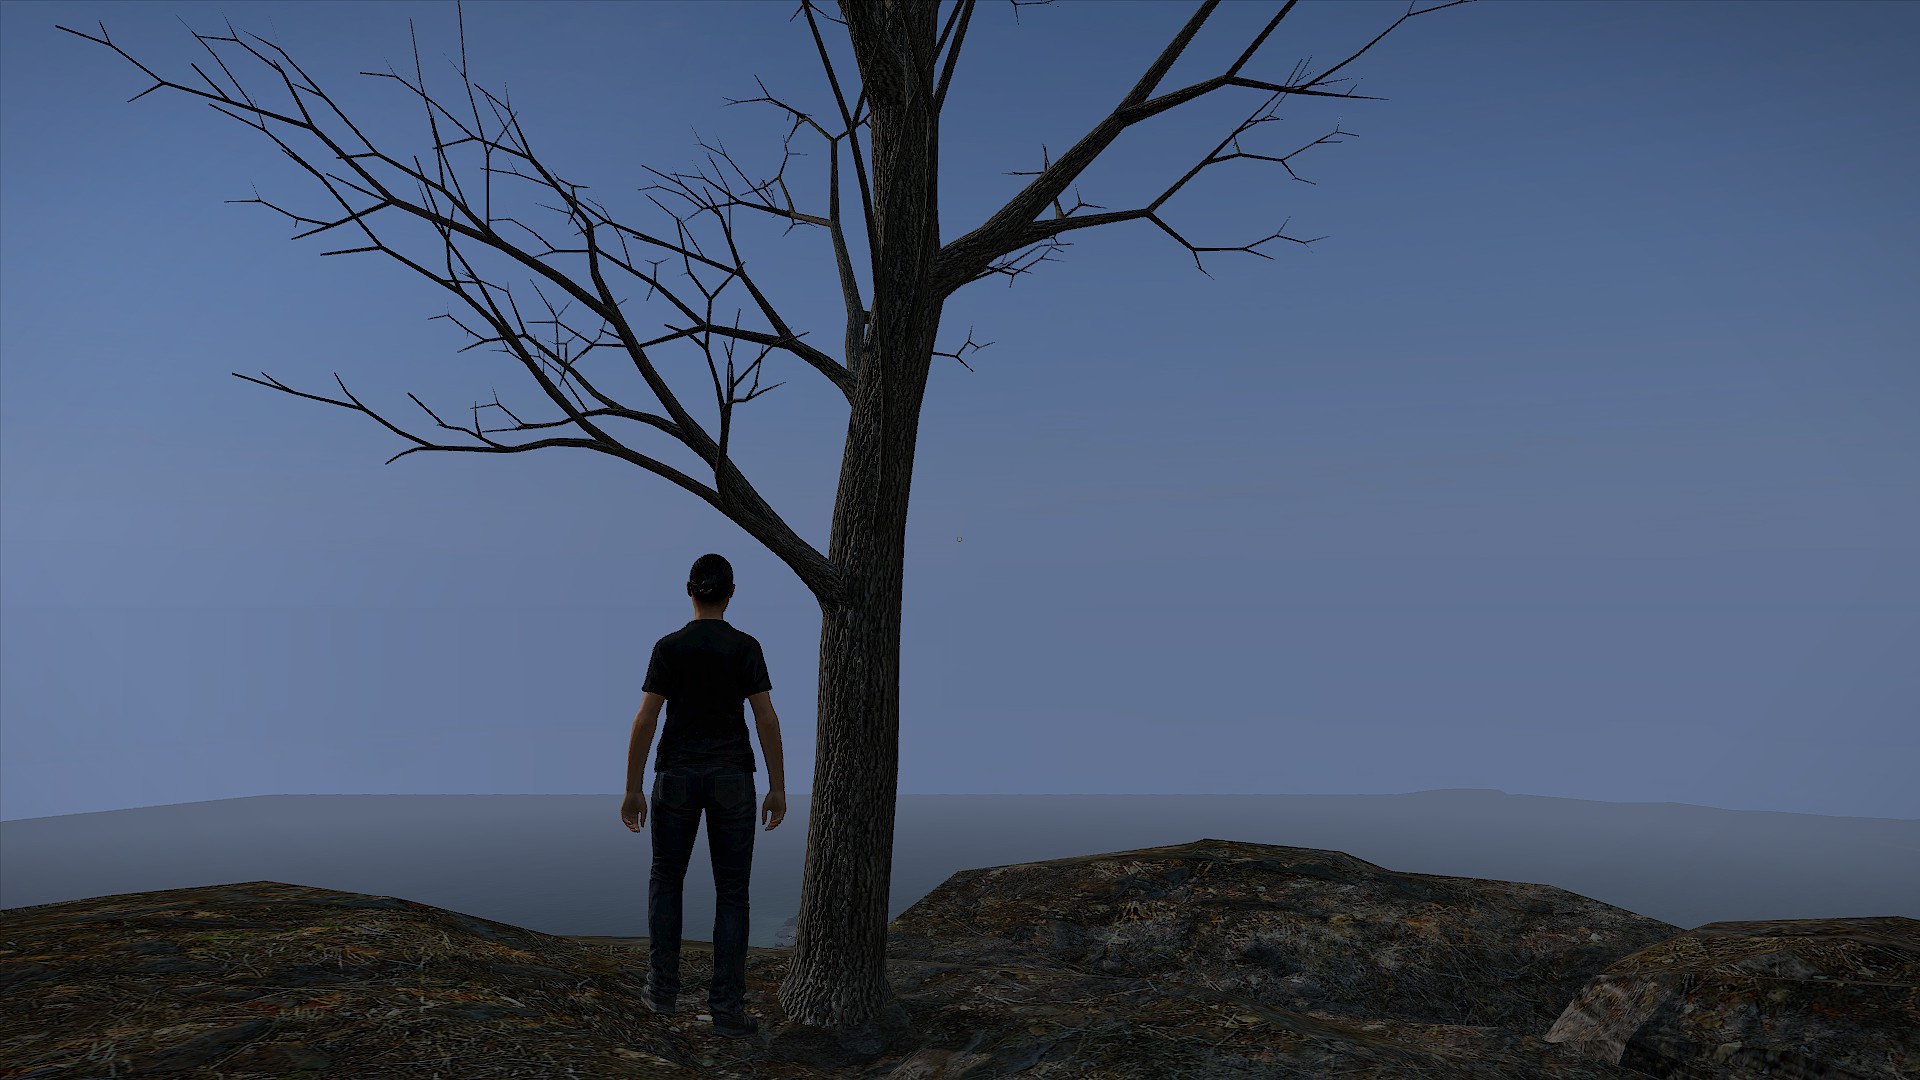 The Lonely Tree. - Dayz TV